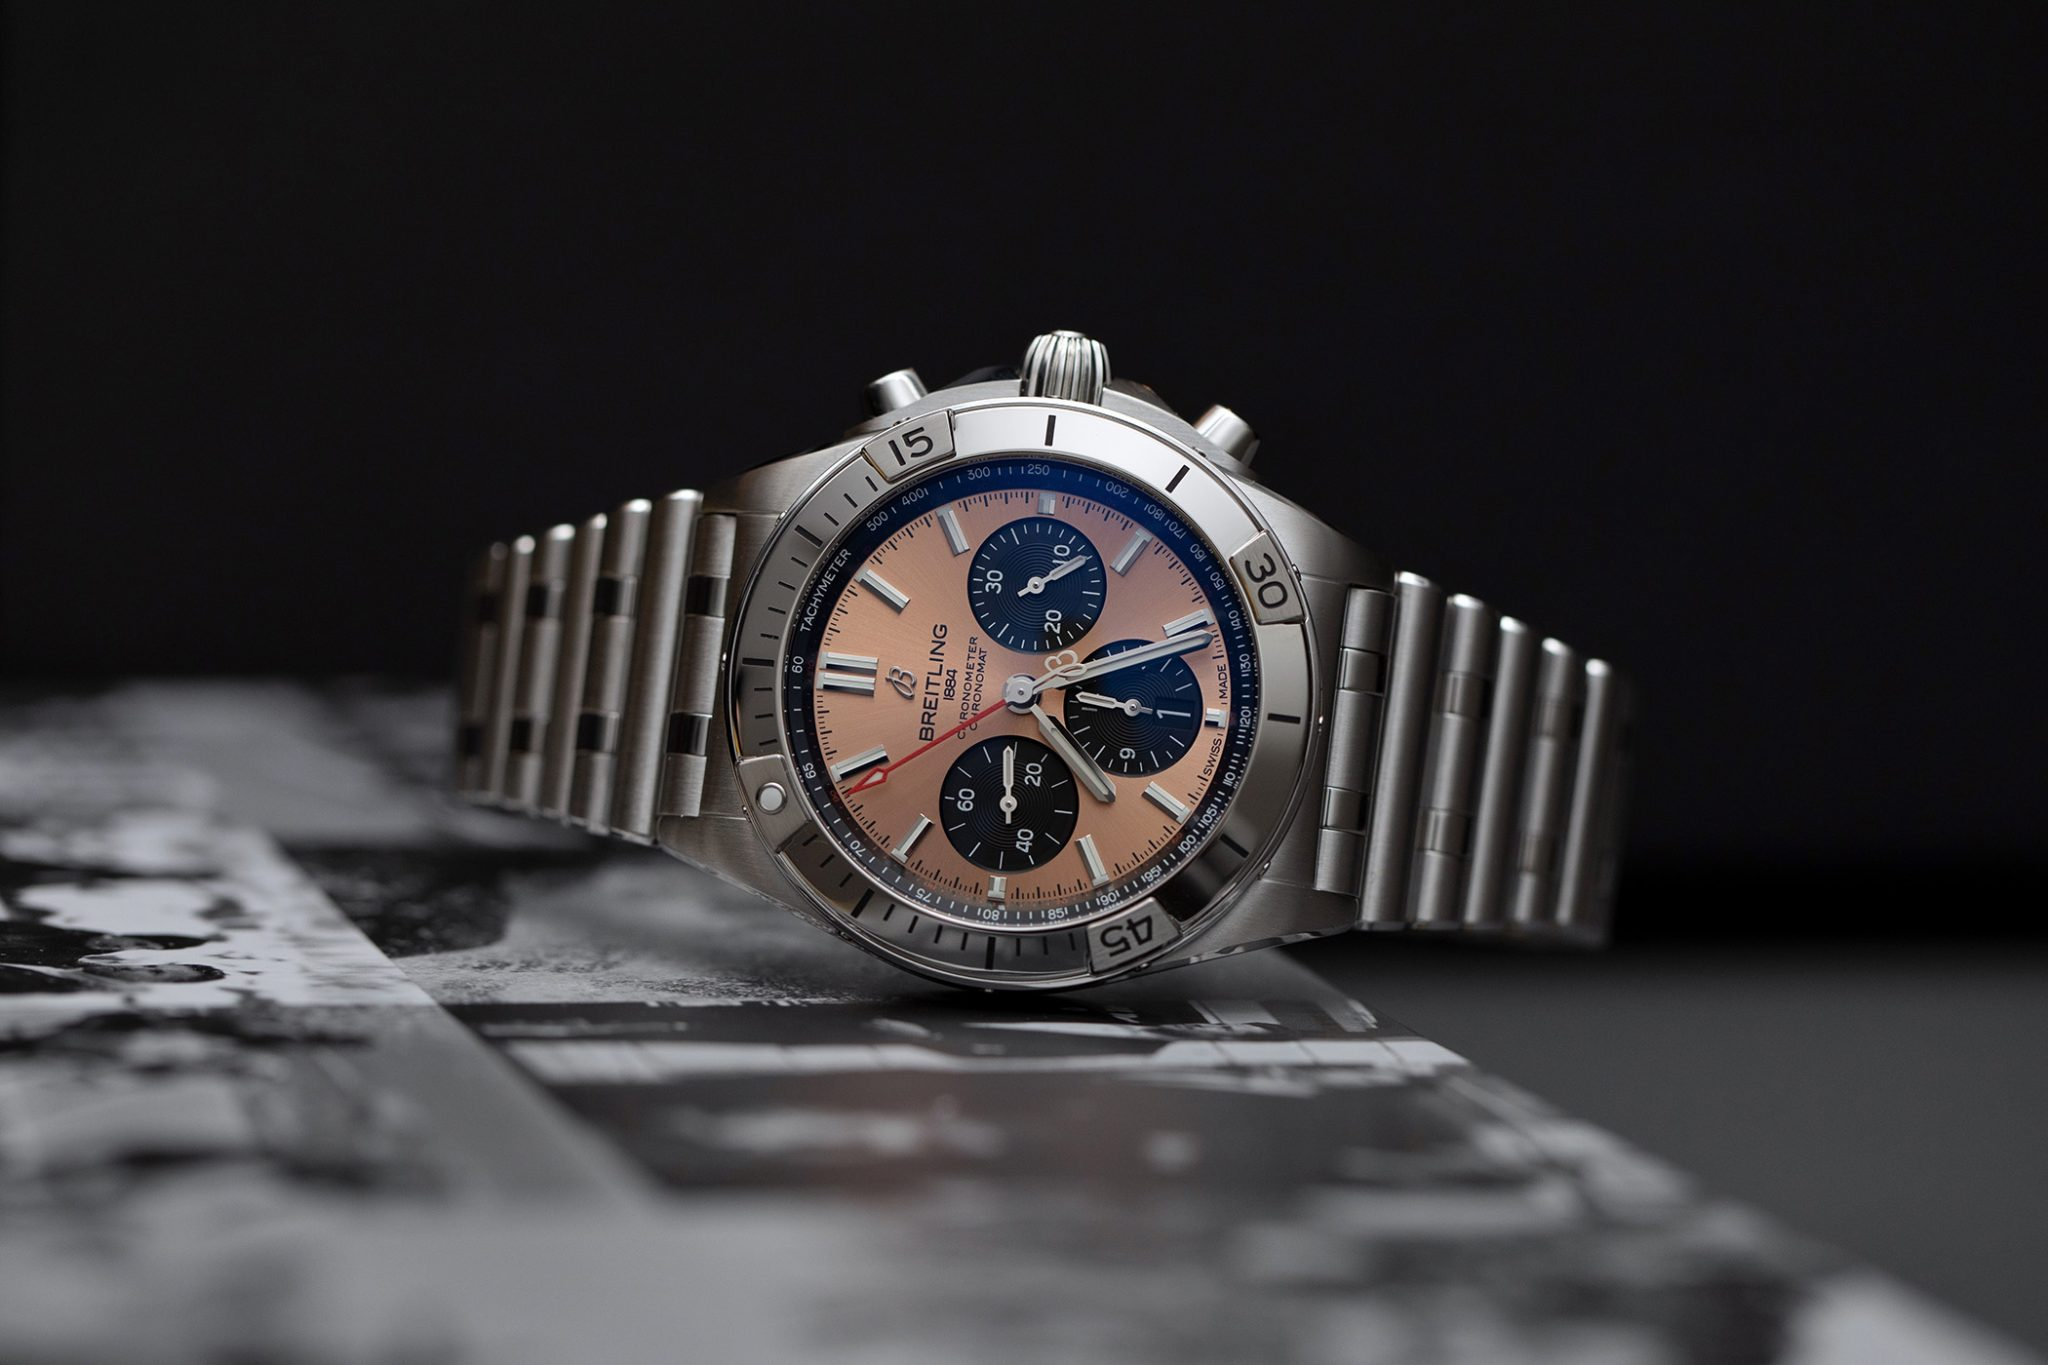 The new Breitling Chronomat collection, here the new Chronomat B01 42 in Stainless Steel with the salmon dial